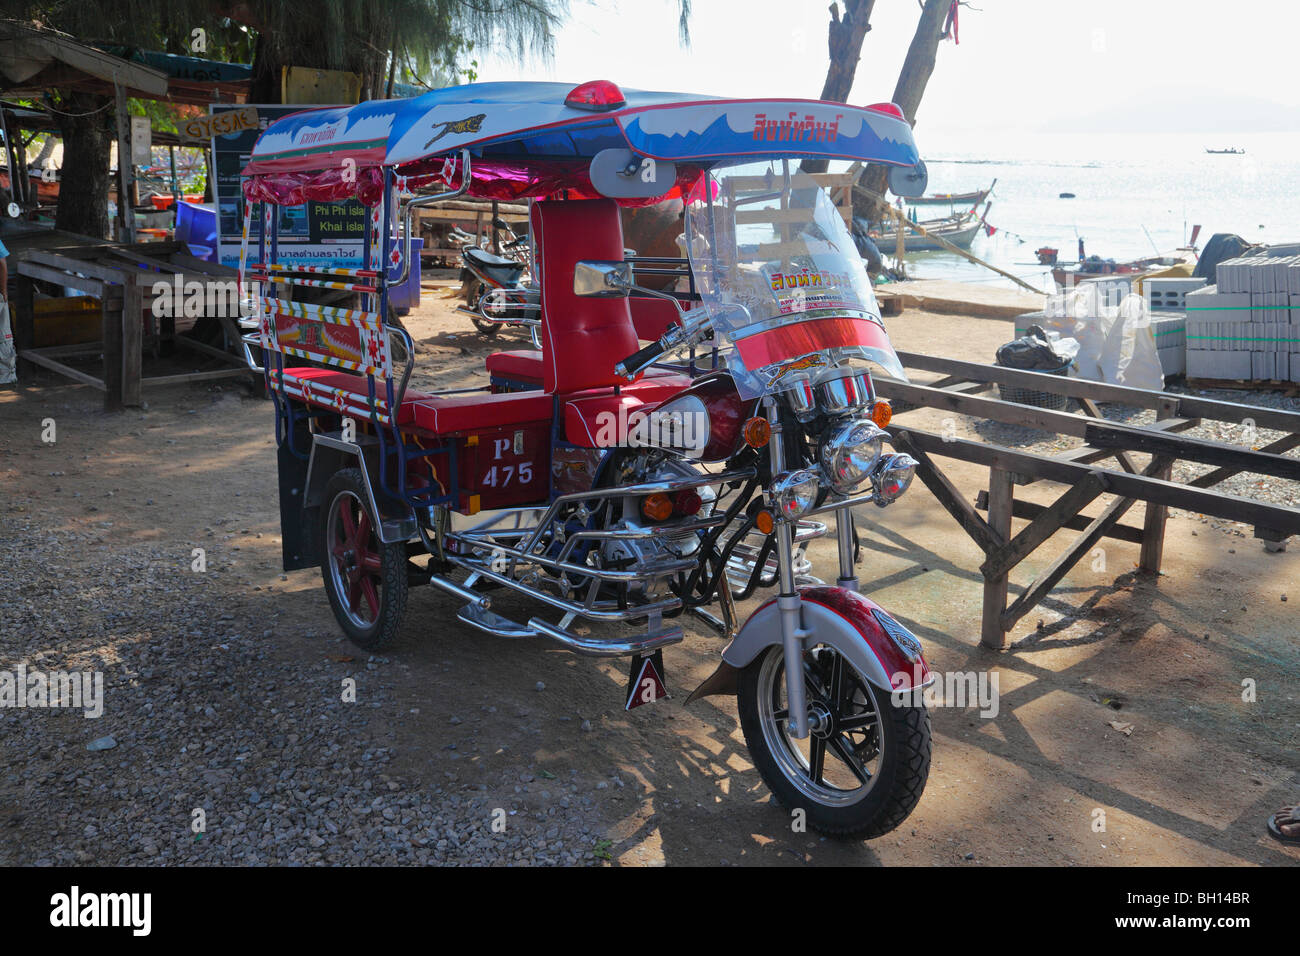 A very smart toc toc in Phuket, Thailand - Stock Image